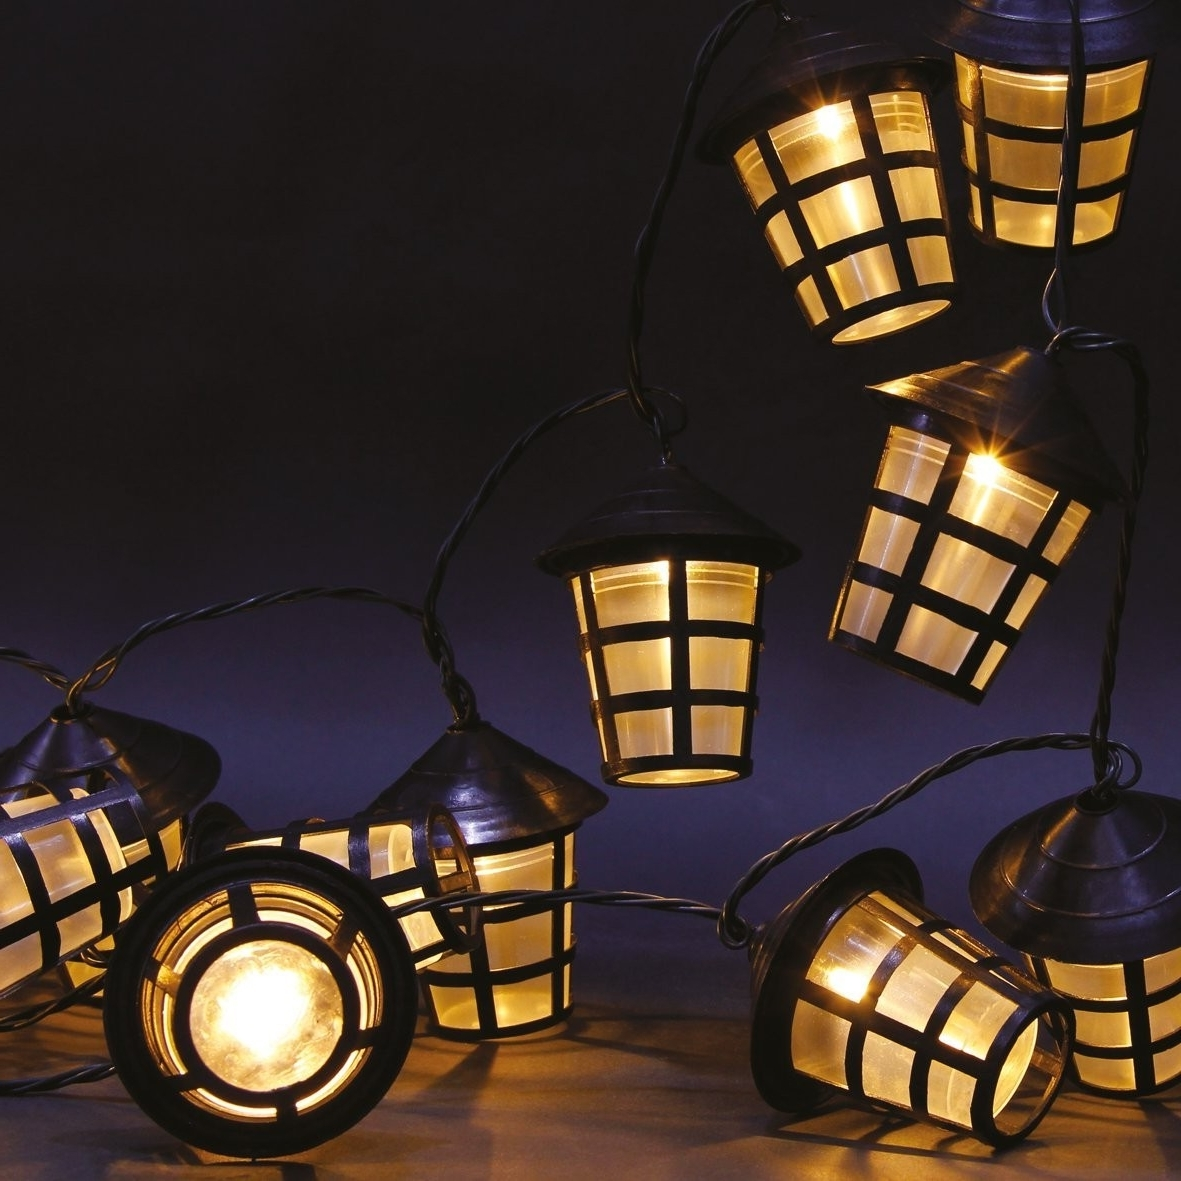 Led Outdoor Lanterns In Most Current 70 Warm White Led Garden Lantern String Lights (View 17 of 20)